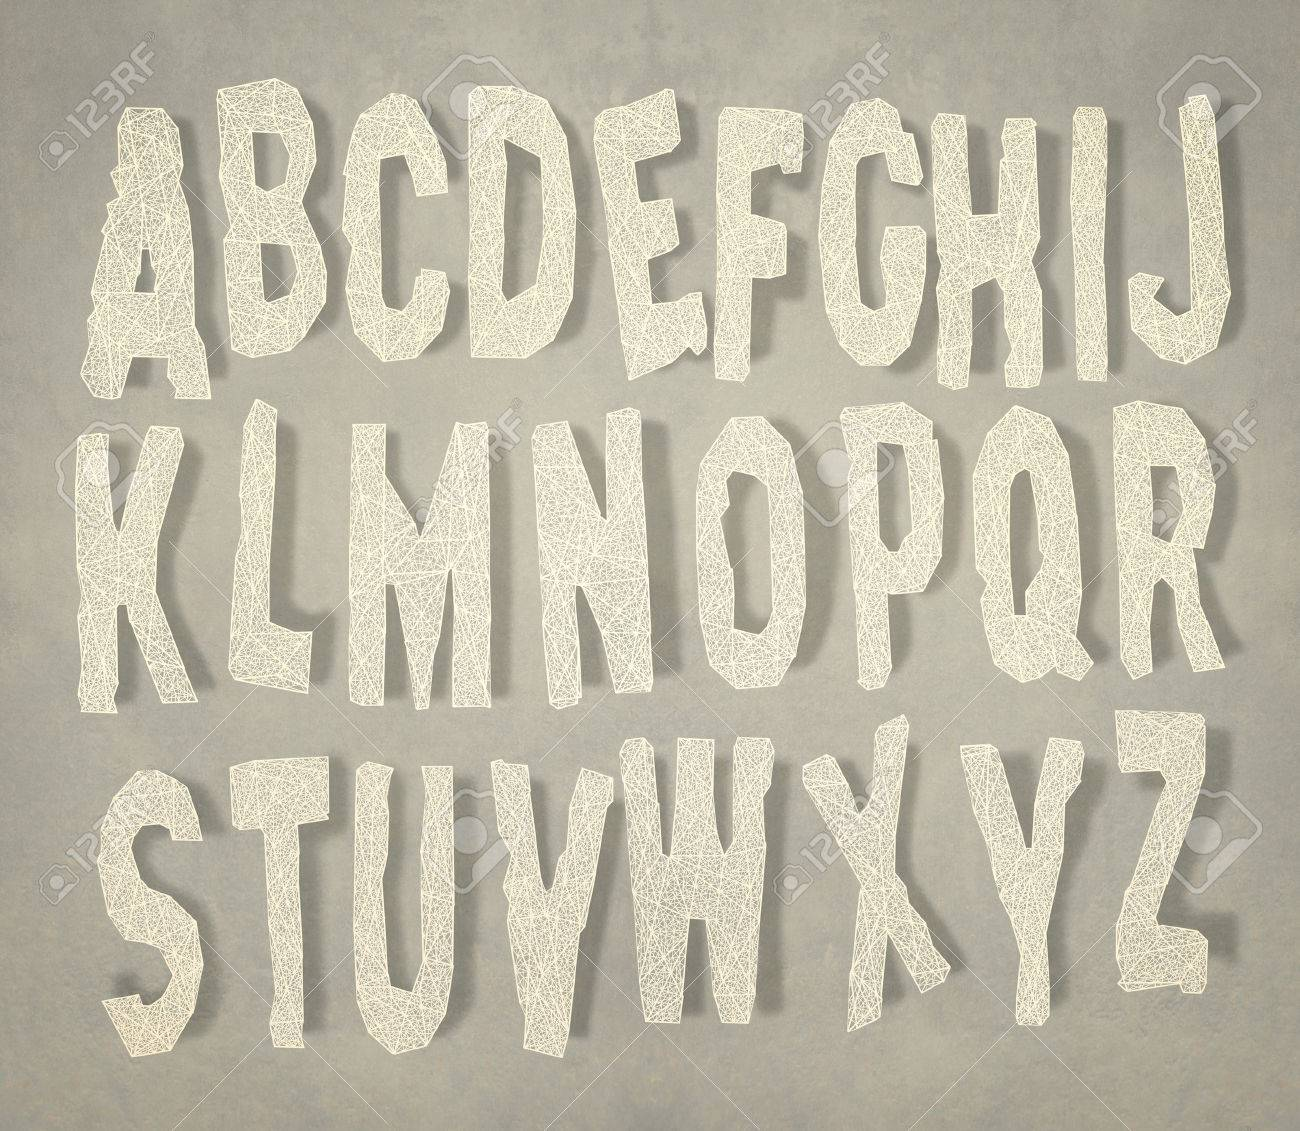 Alphabet In Capital Letters From A To Z With Their Shadow Stock Photo